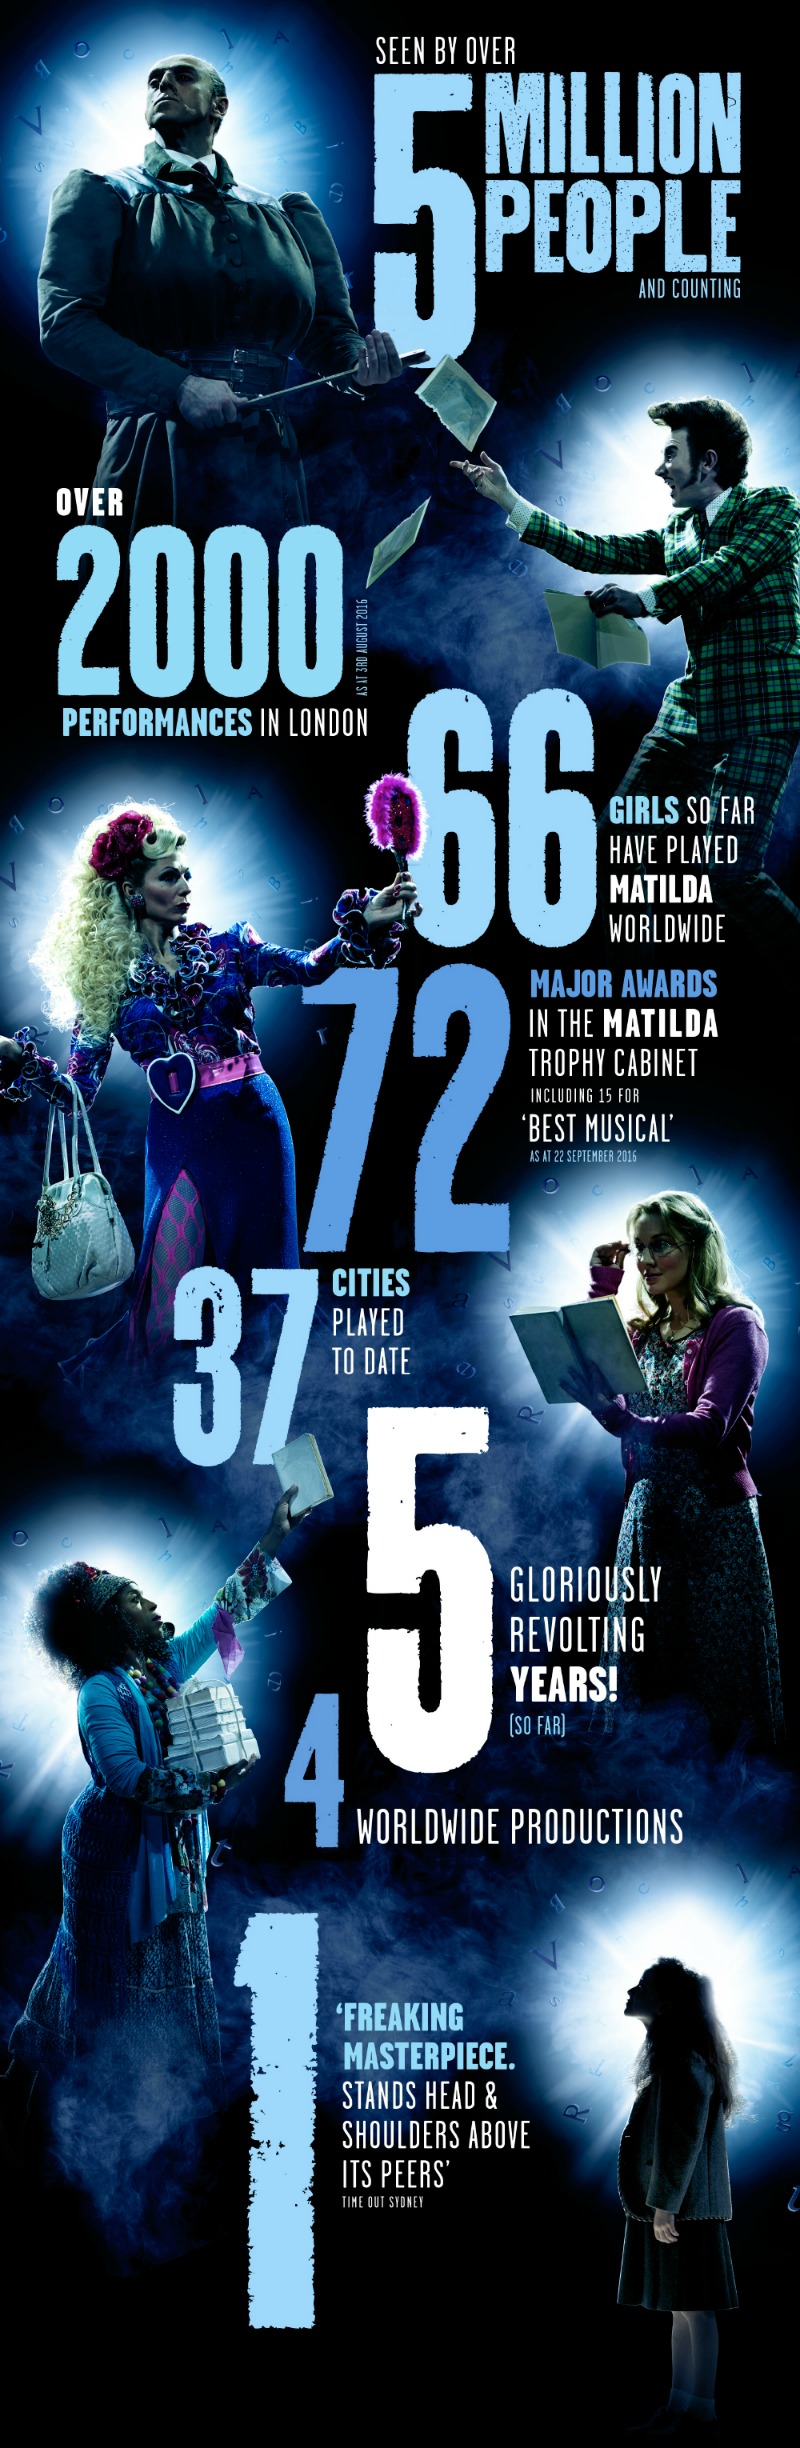 Matilda the Musical turns 5 in the West End